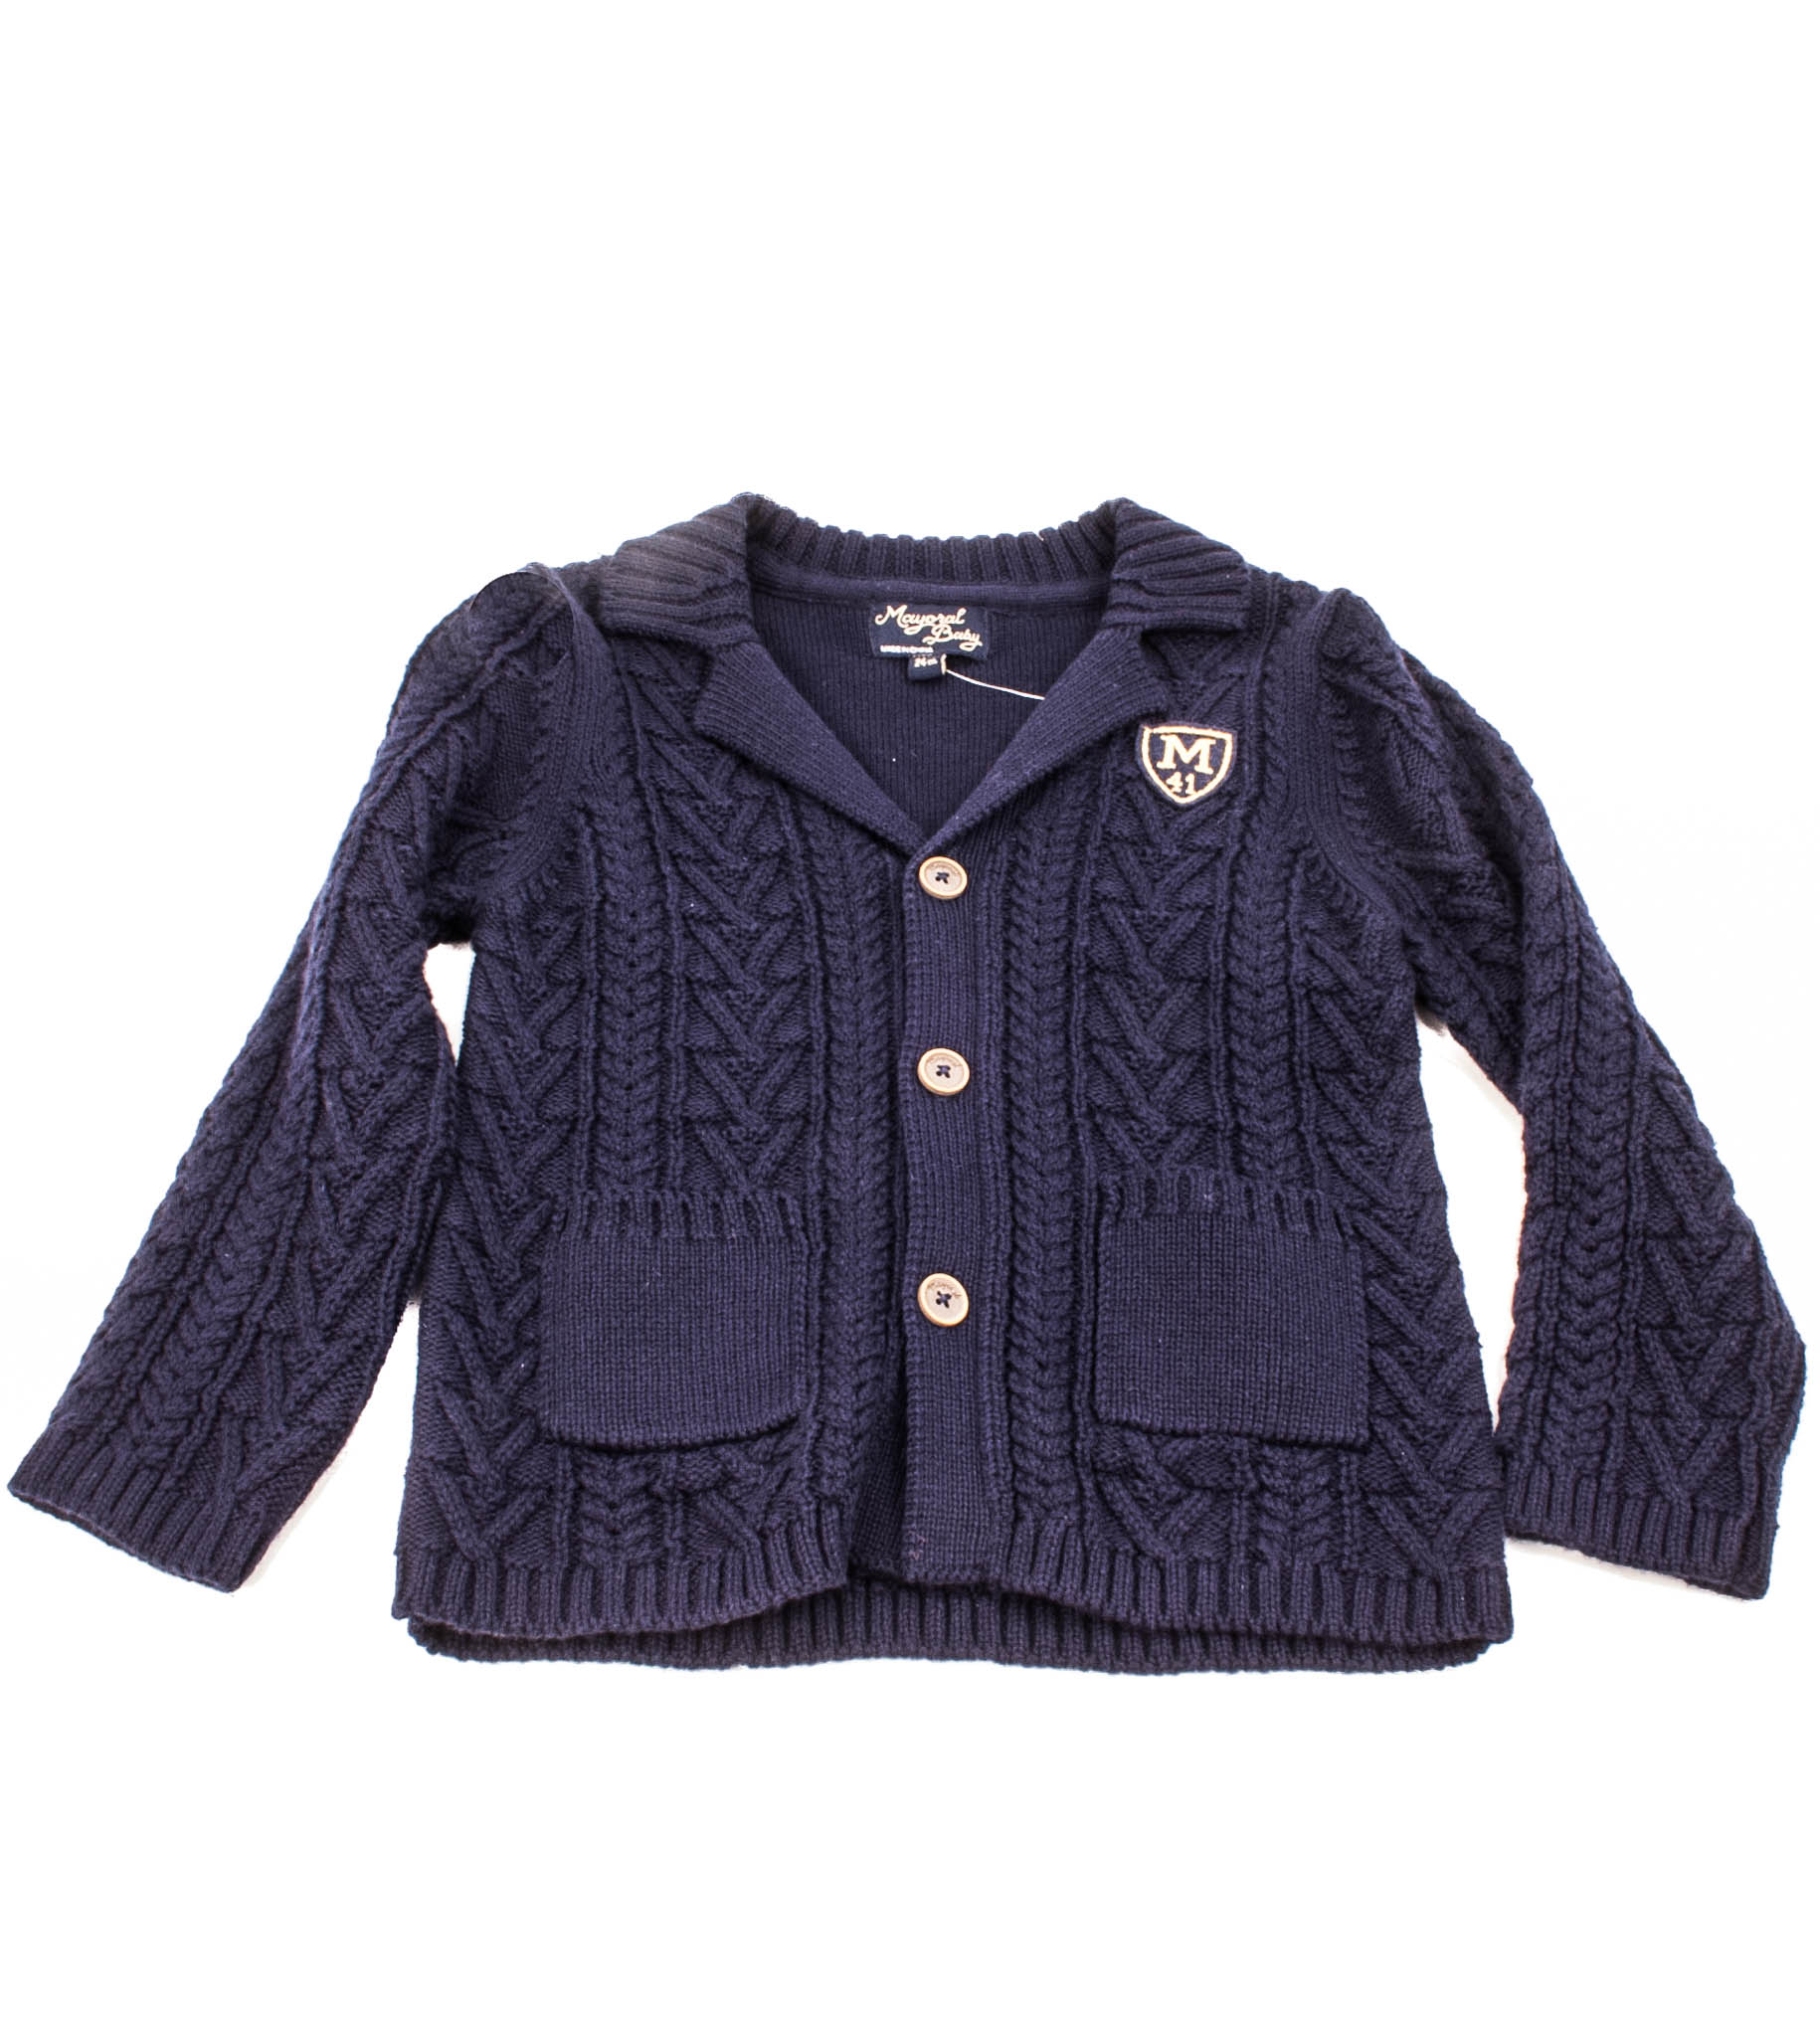 2453 Mayoral Navy Blue Knit Sweater Jacket with Gold Crest